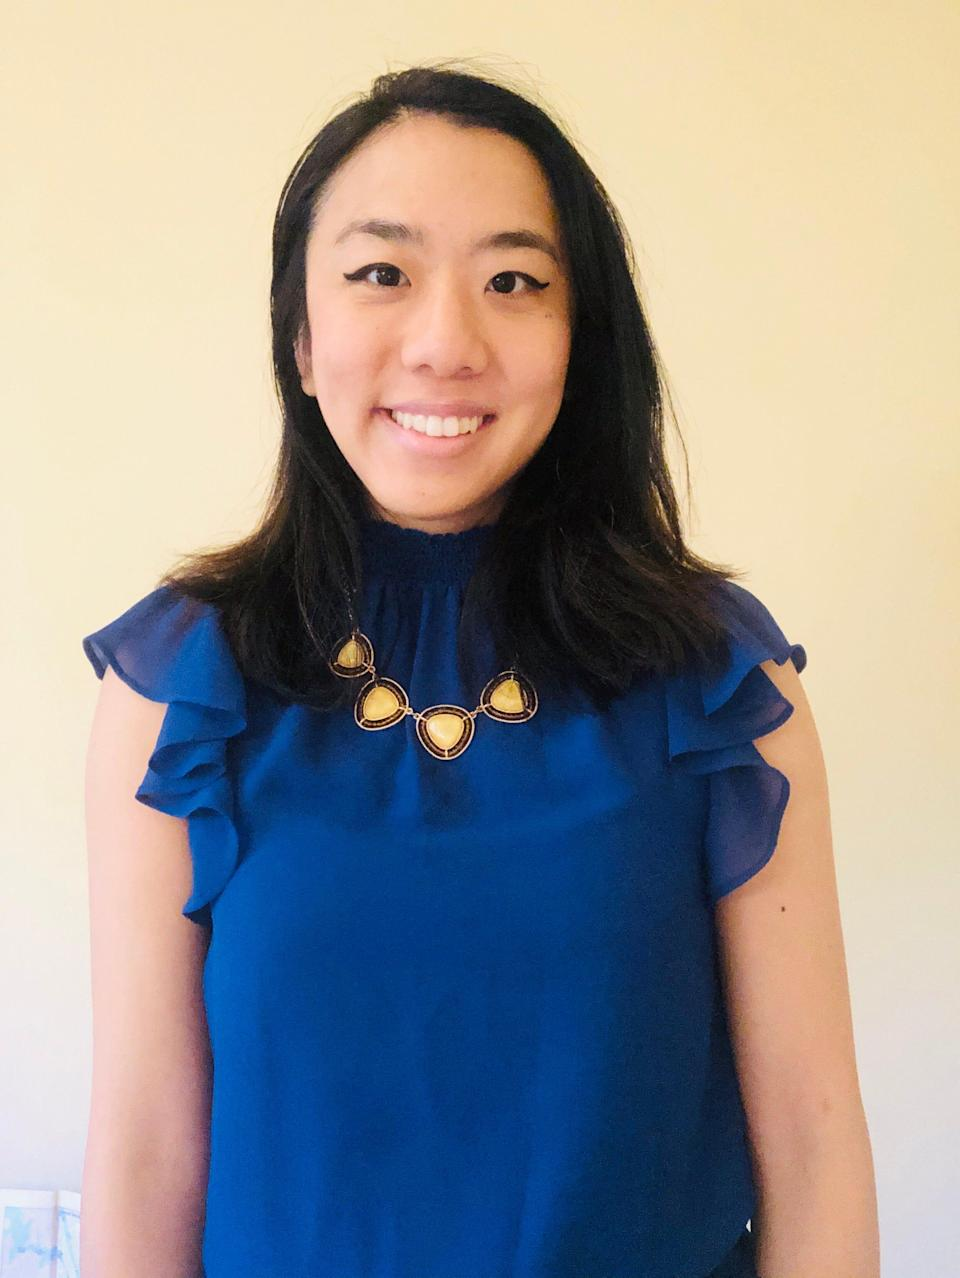 Michelle Shen is a Money and Tech reporter